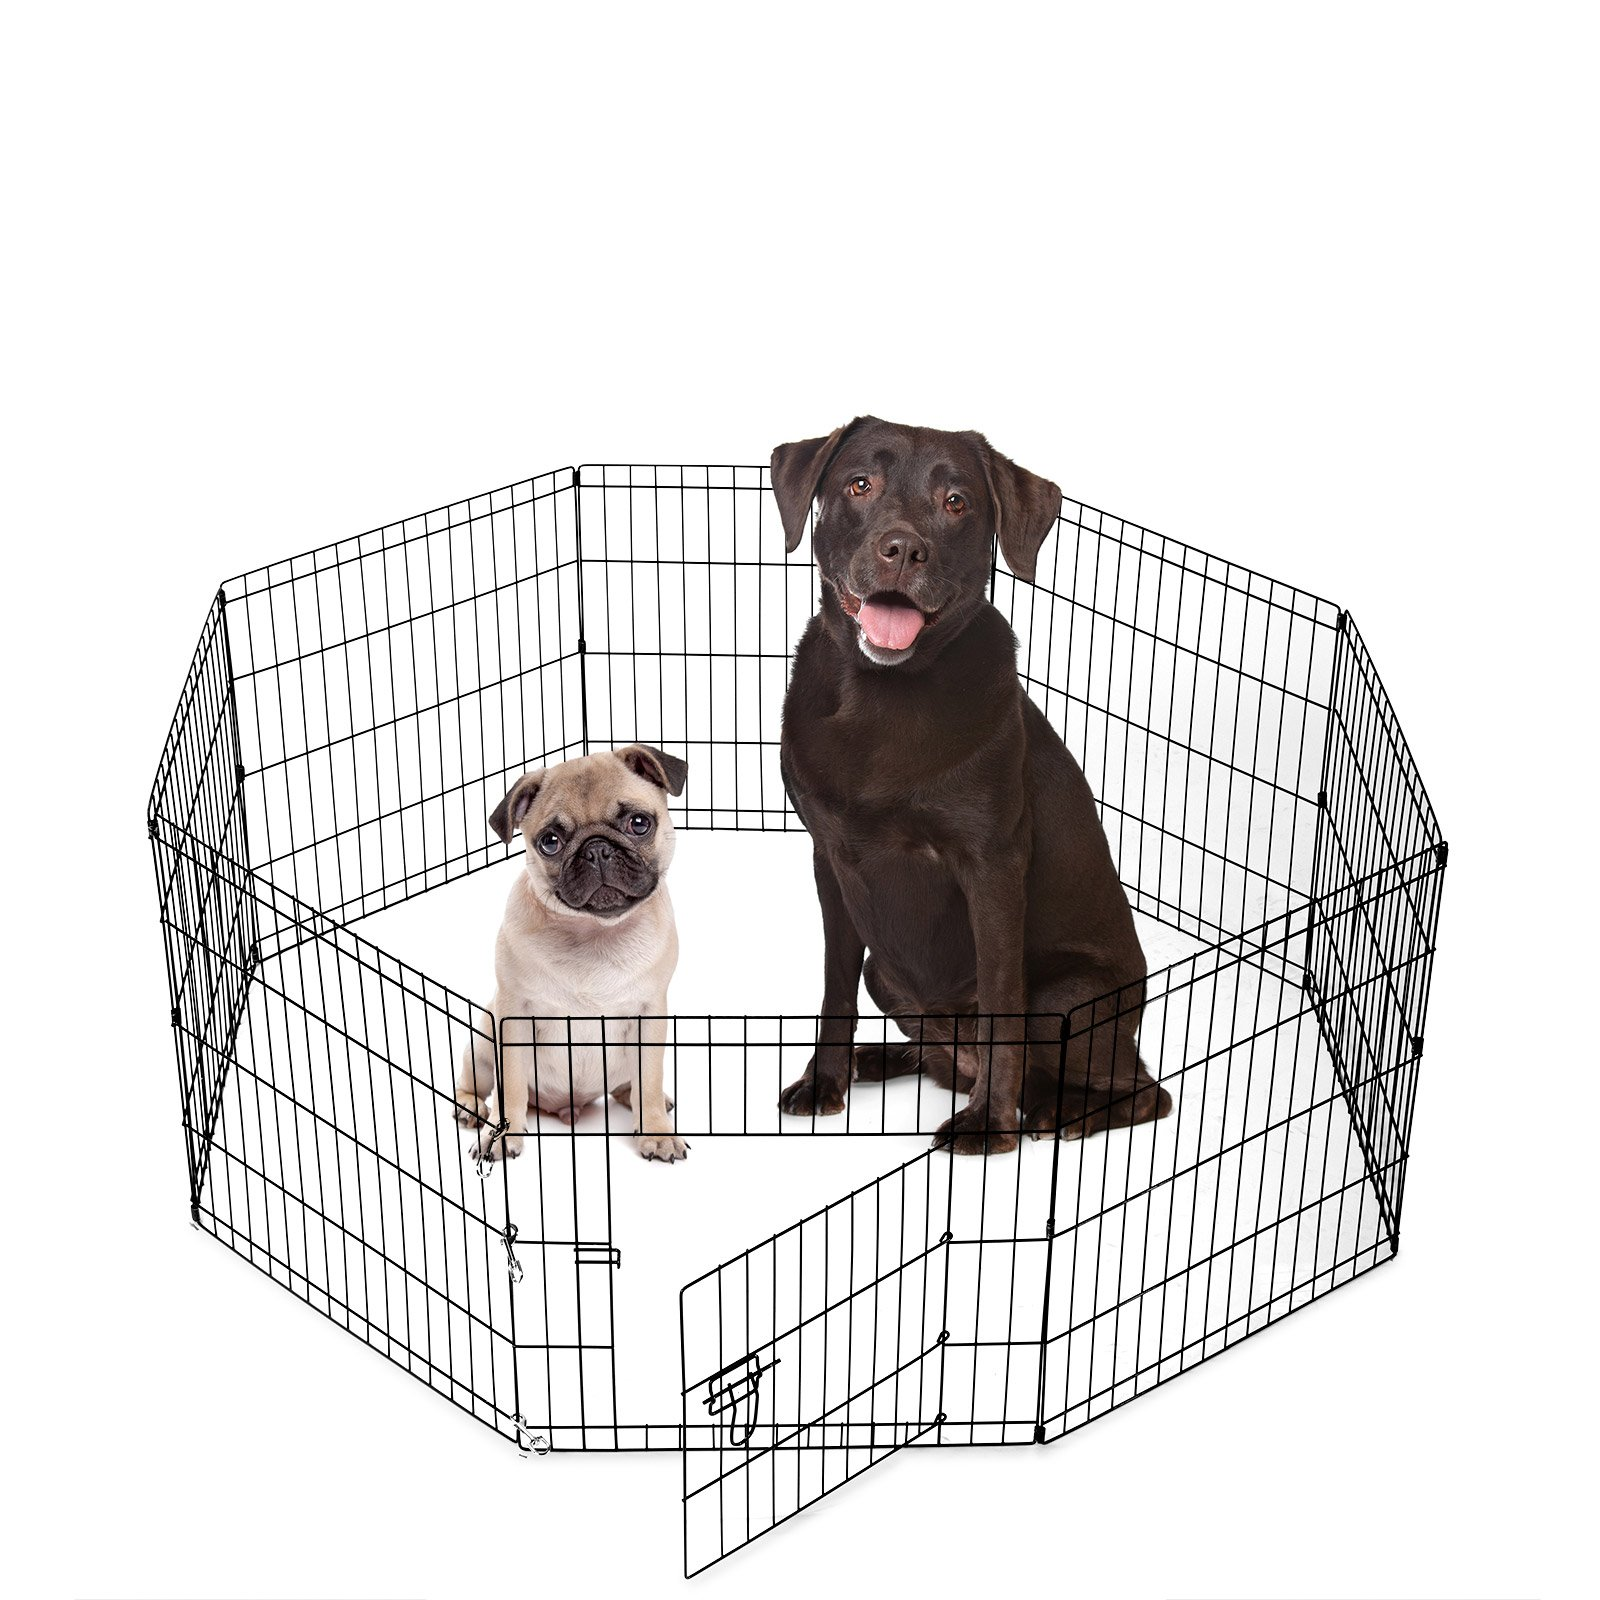 SmithBuilt Crates 8 Panel Metal Wire Popup Portable Fence Playpen Folding Exercise Yard with Door and Carry Bag, 24-Inch High, Black